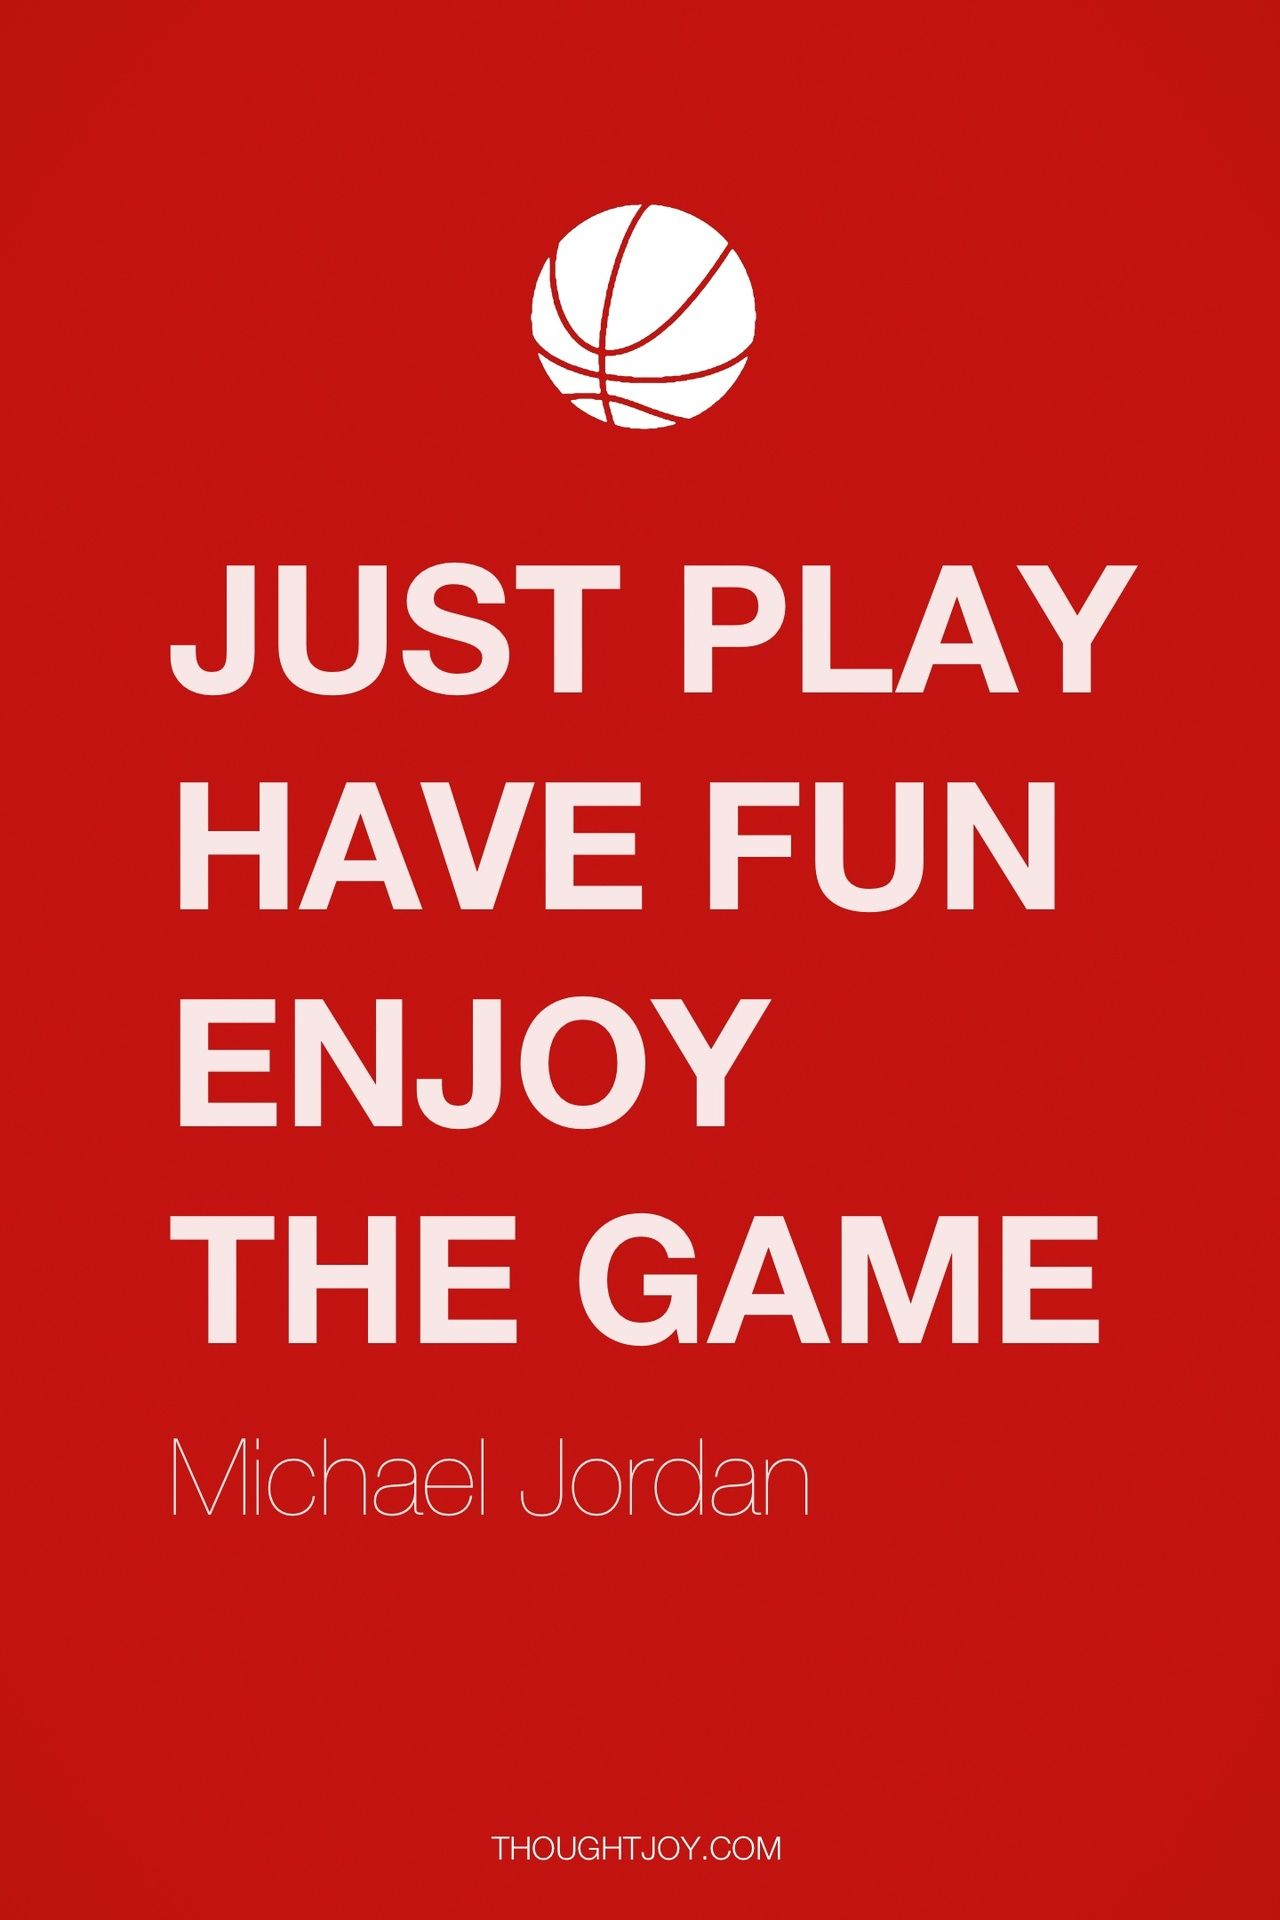 Just Play Have Fun Enjoy The Game Michael Jordan Quote Quotes Design Typography Art Basketball Jordan Quotes Basketball Quotes Sports Quotes